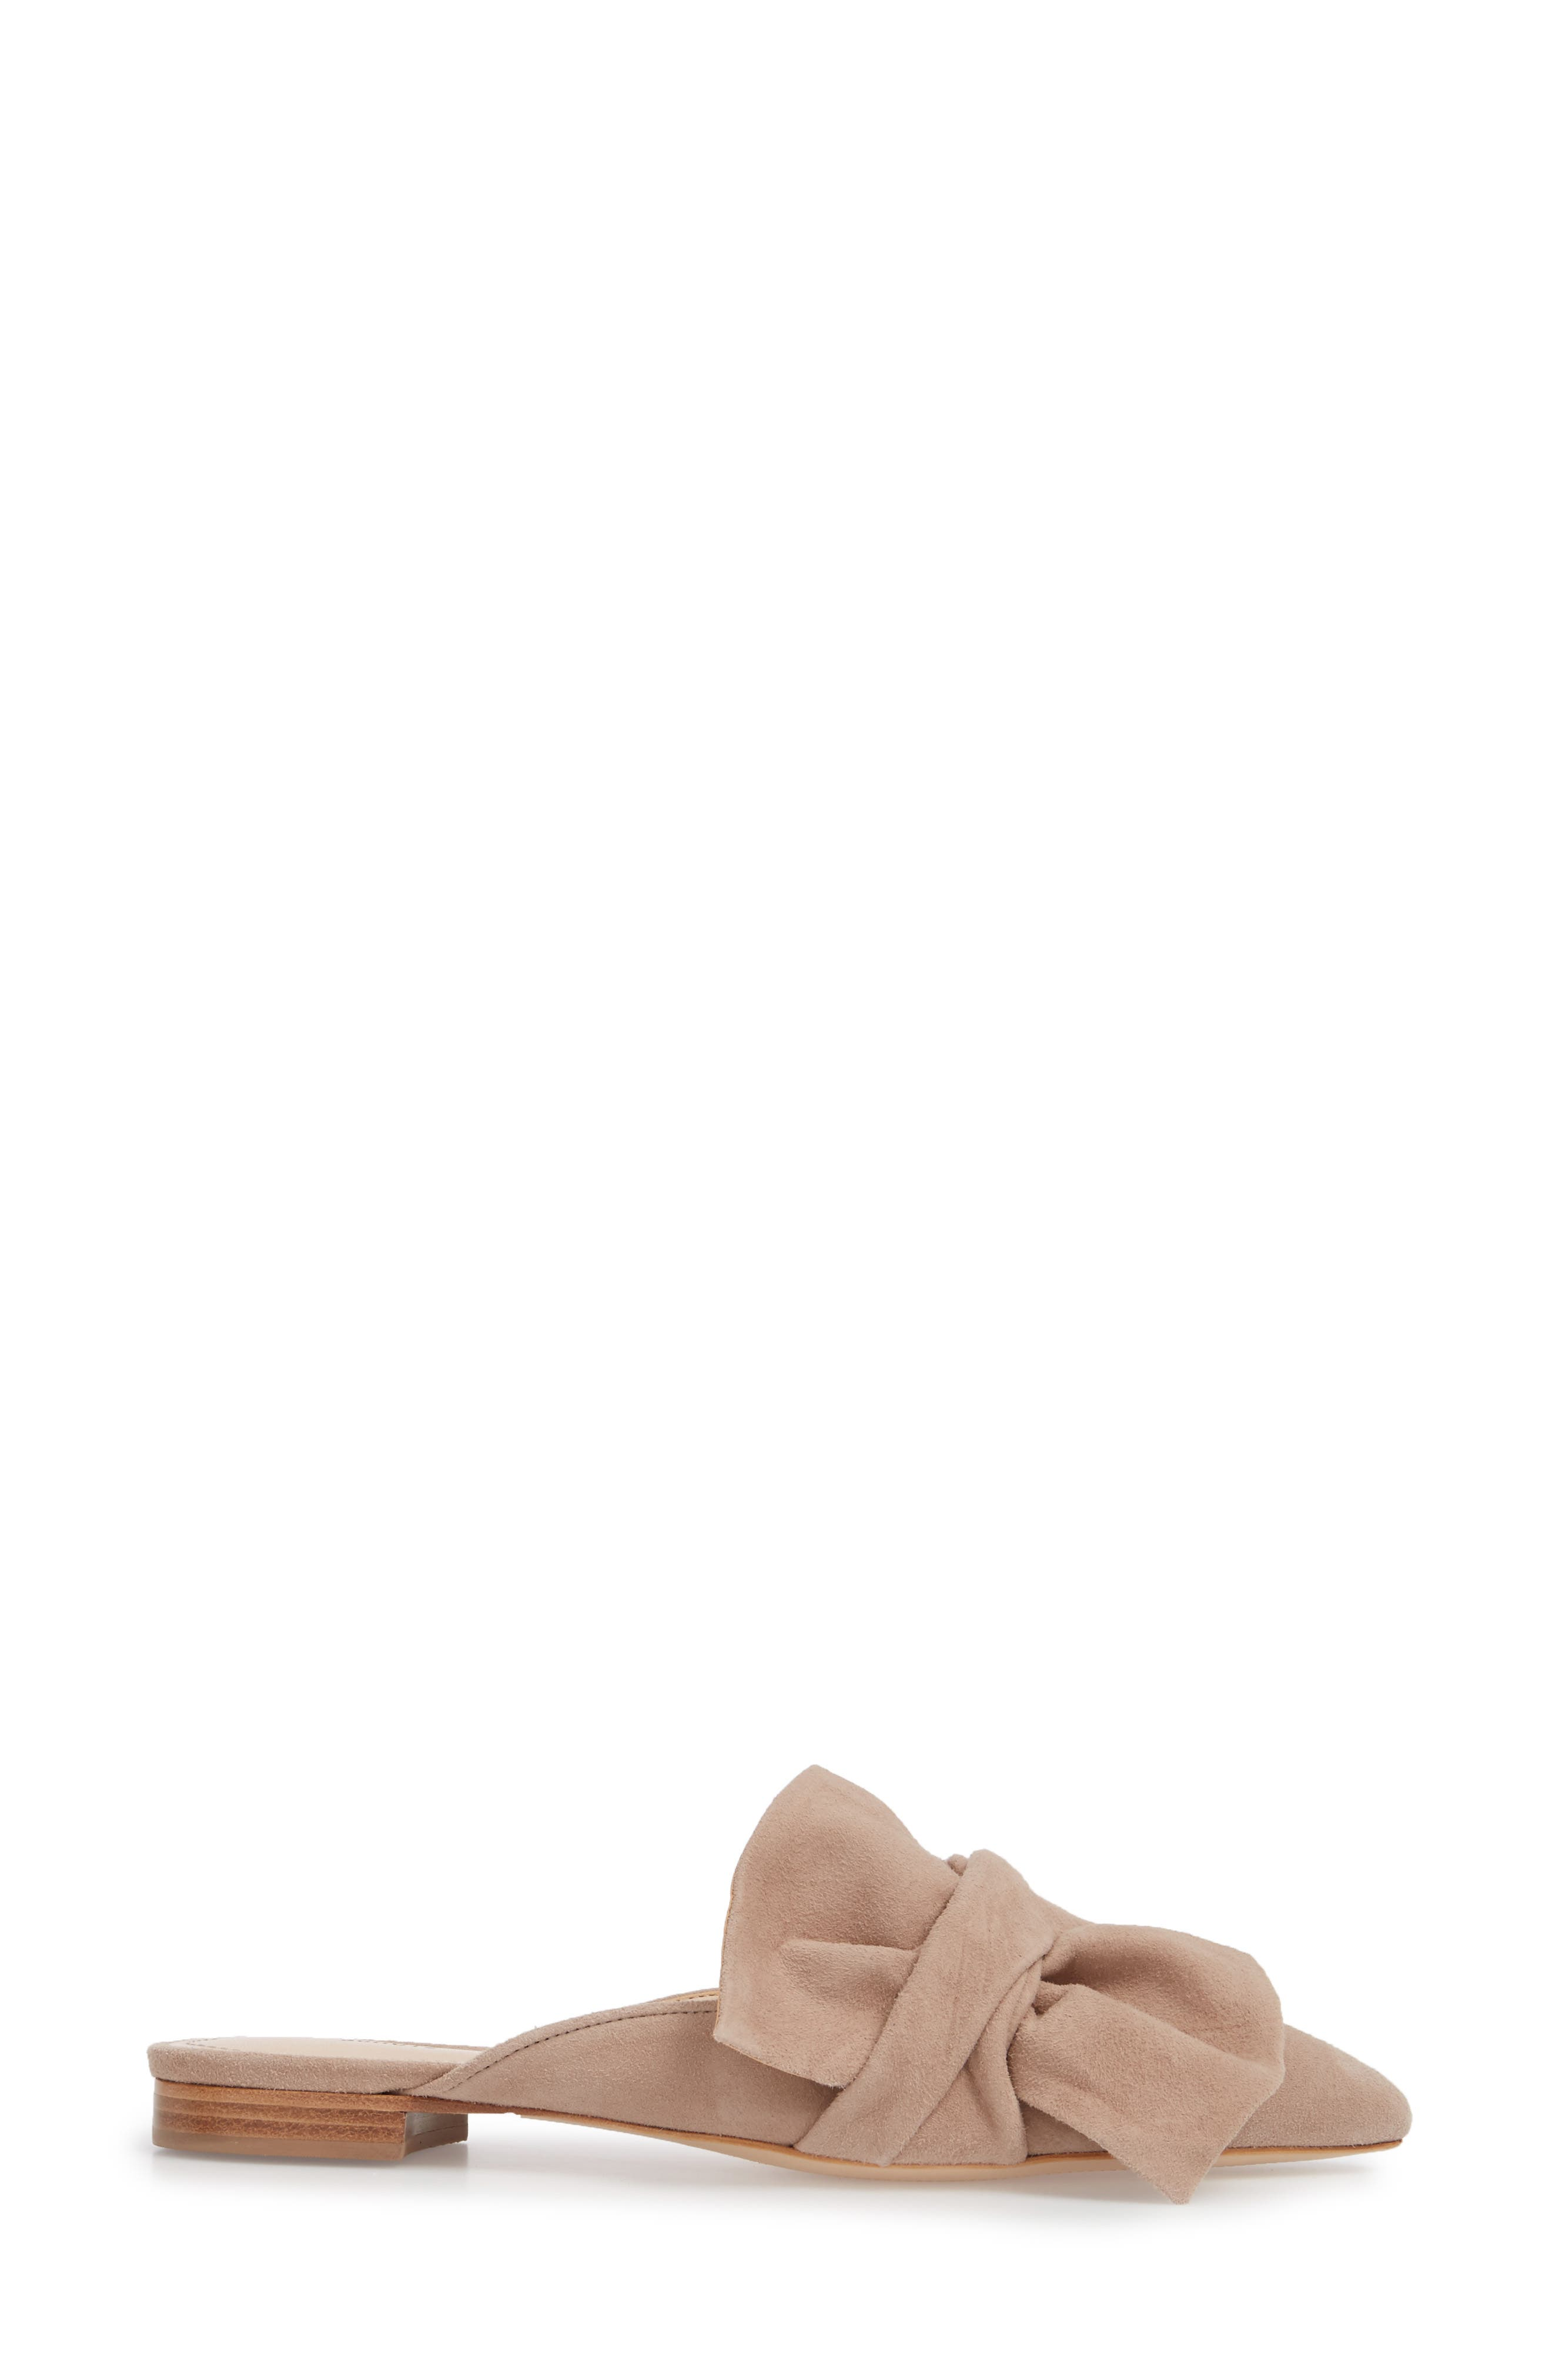 D'Ana Knotted Loafer Mule,                             Alternate thumbnail 3, color,                             NEUTRAL SUEDE